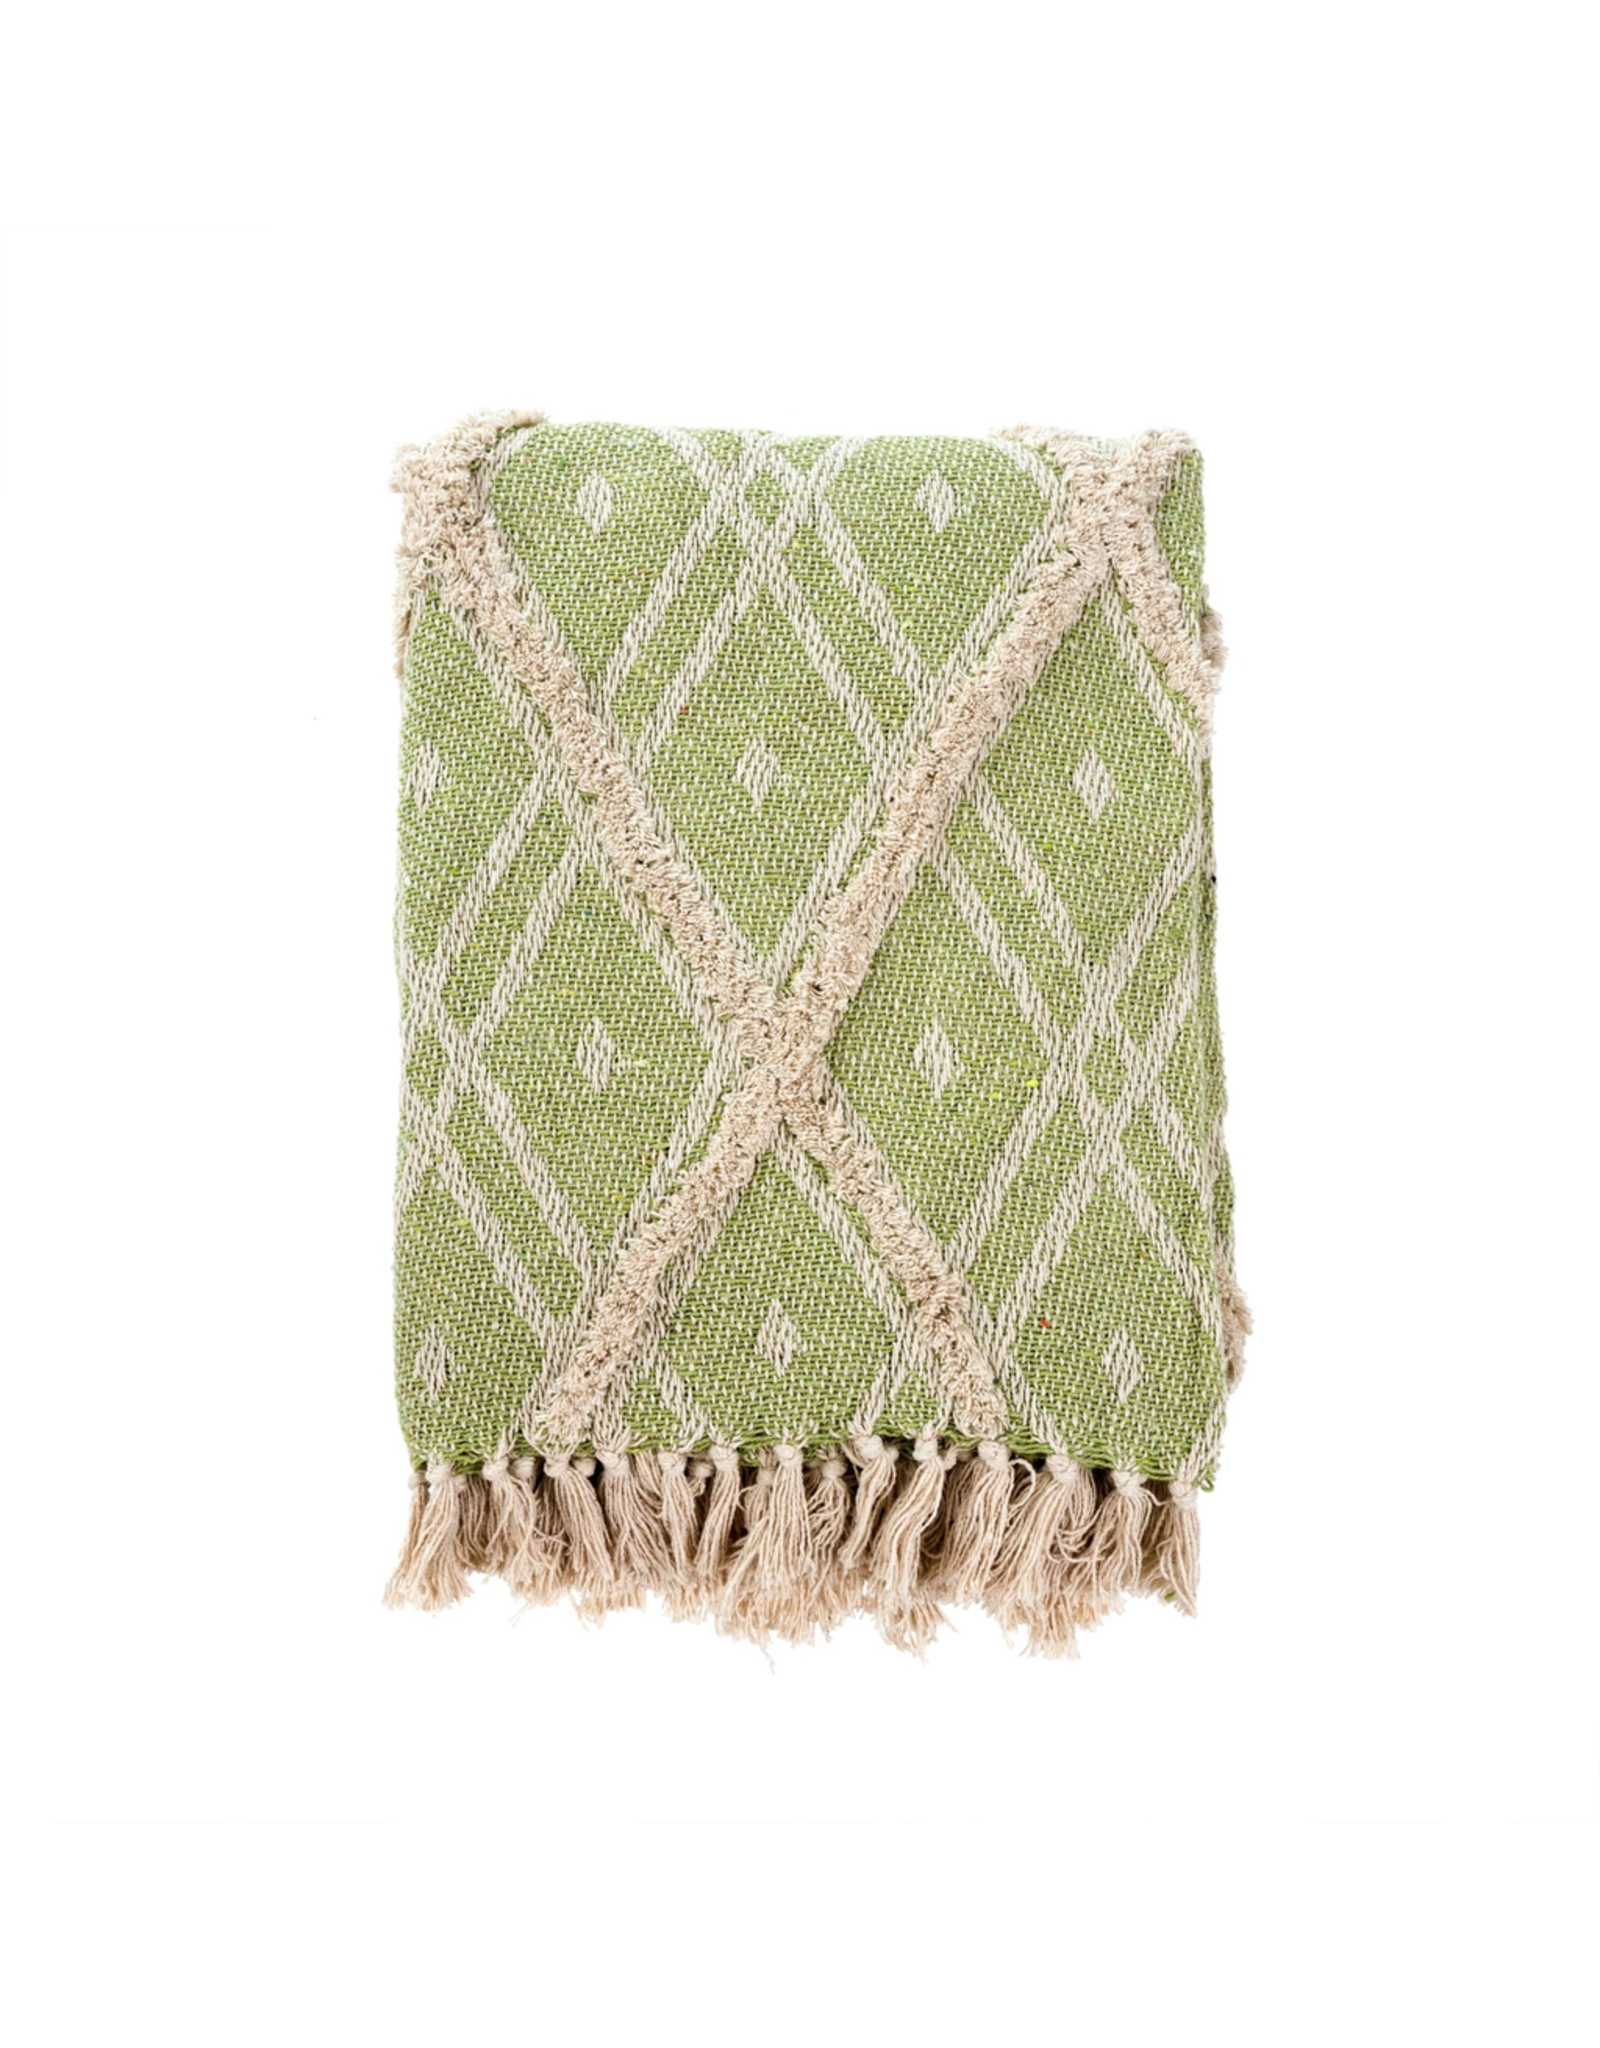 Tufted Tangier Green Throw